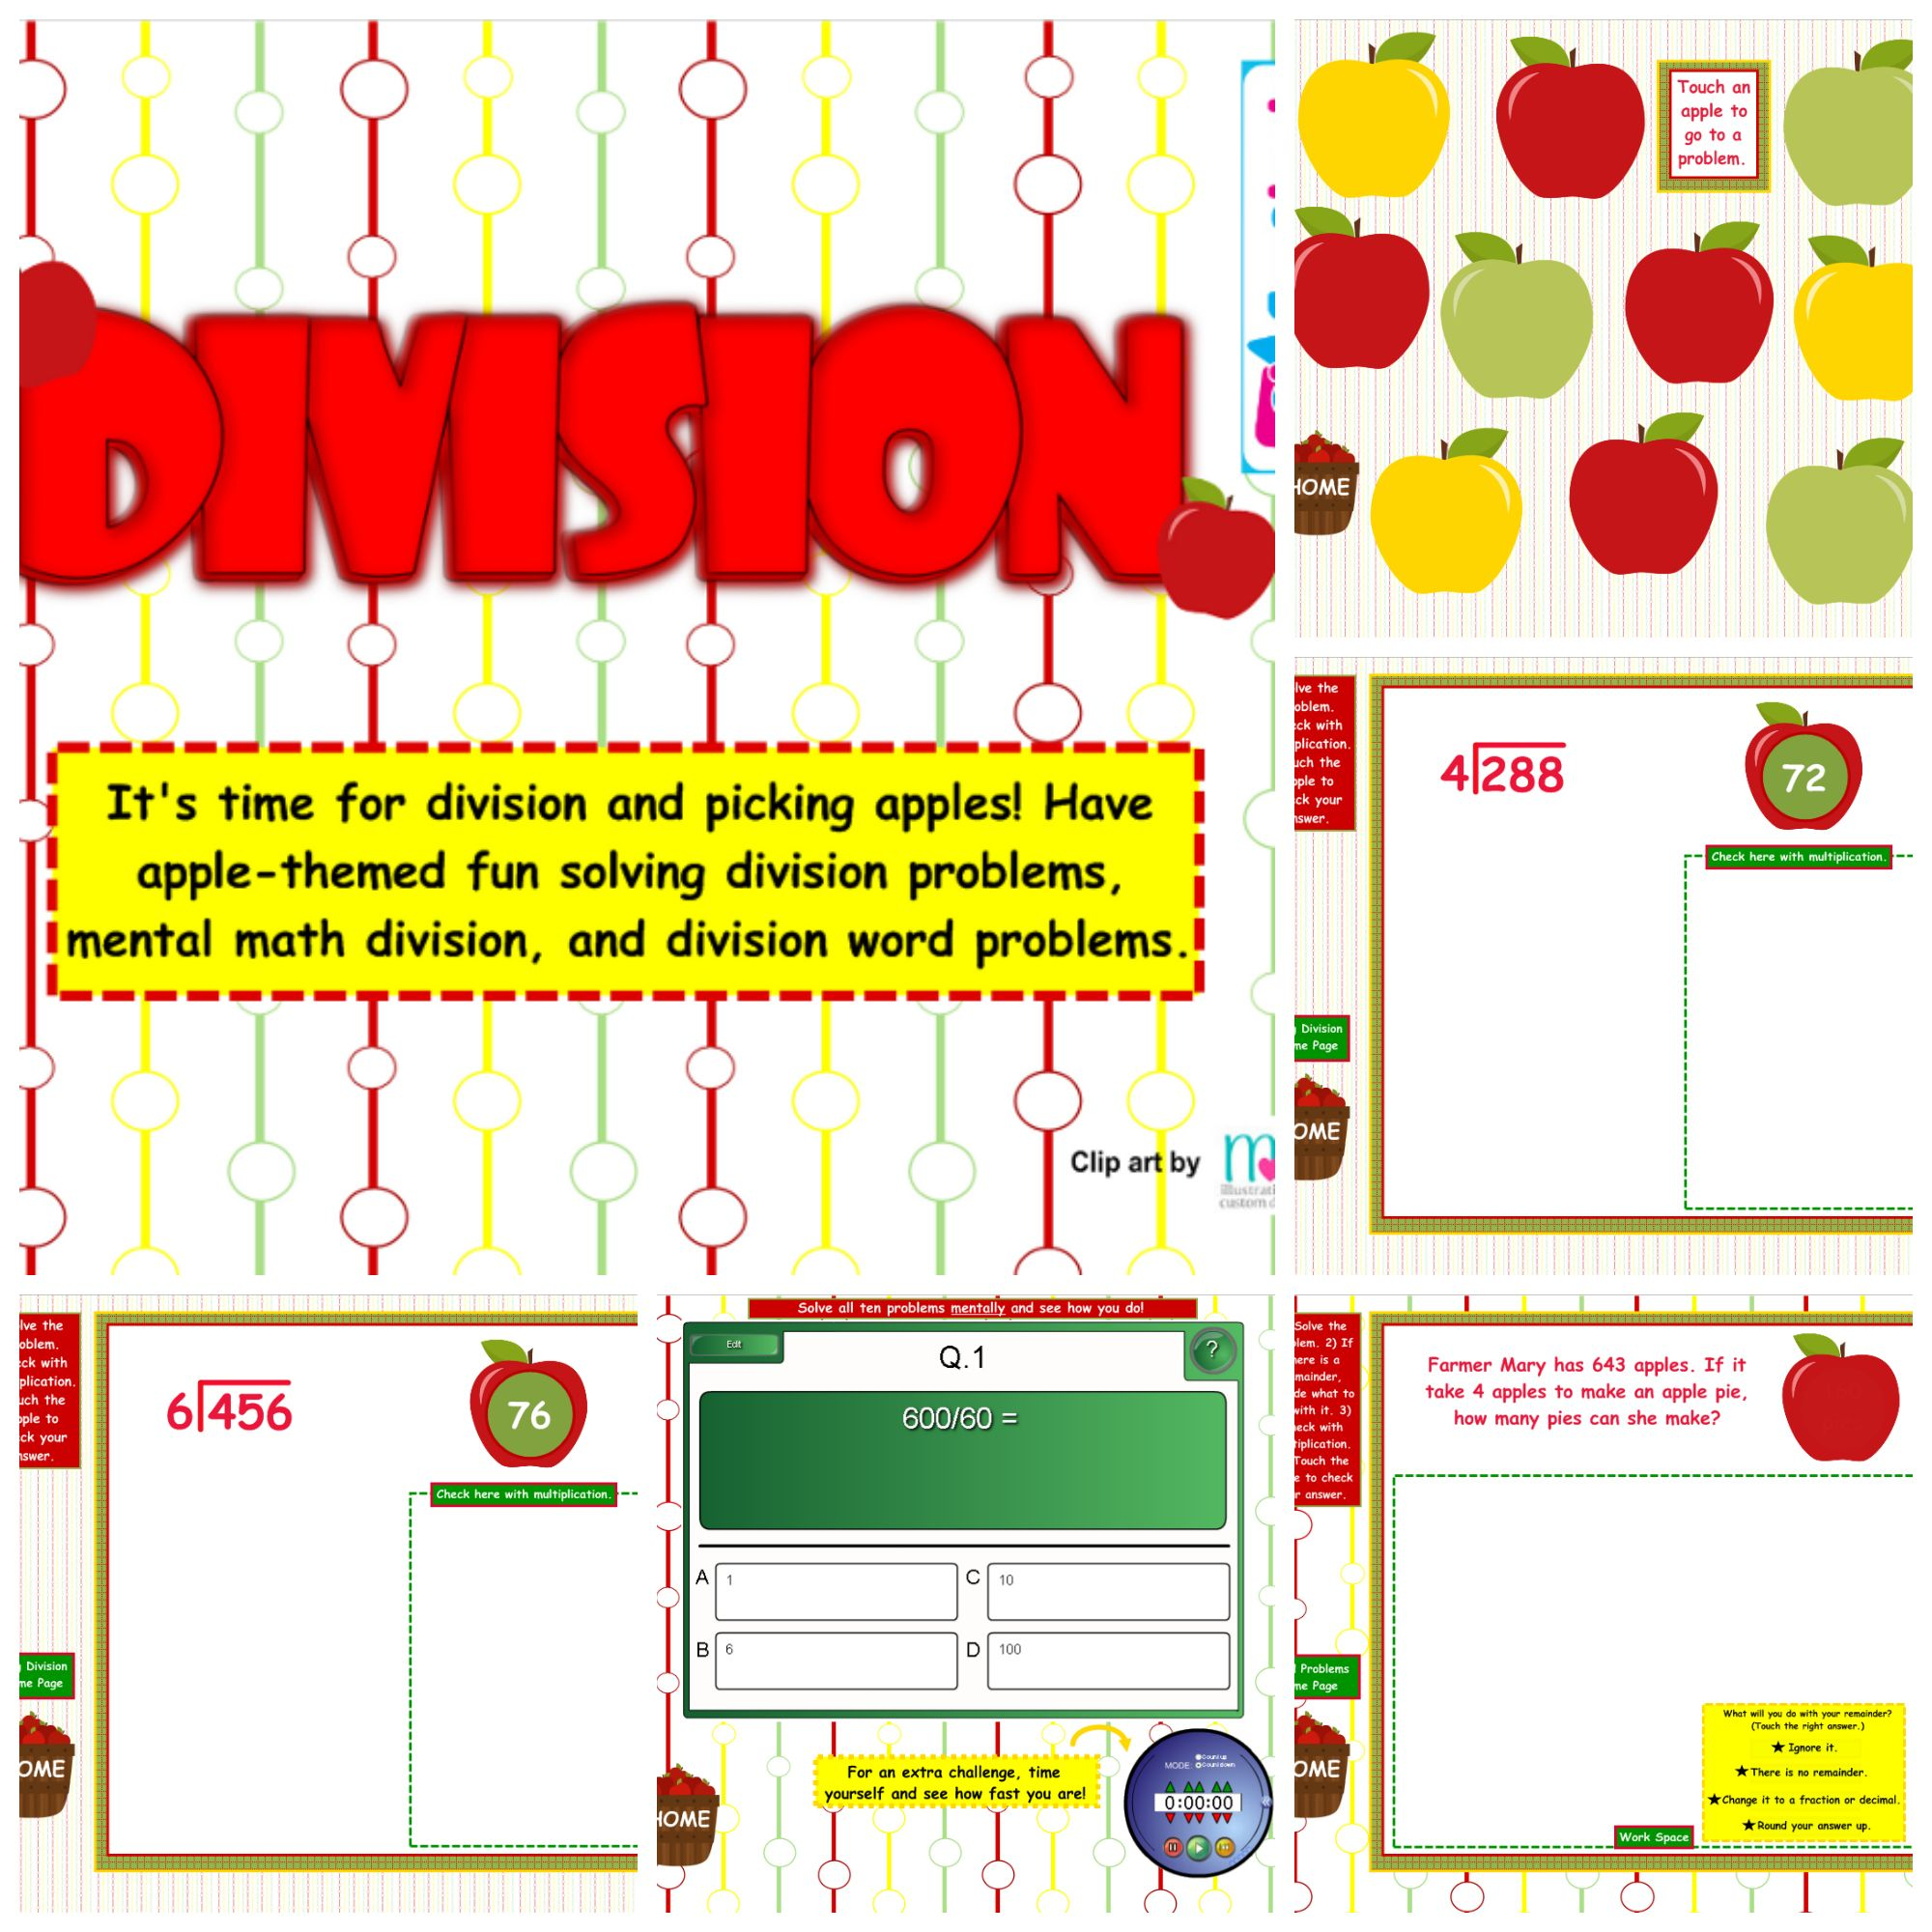 Division Problems Smart Board Games